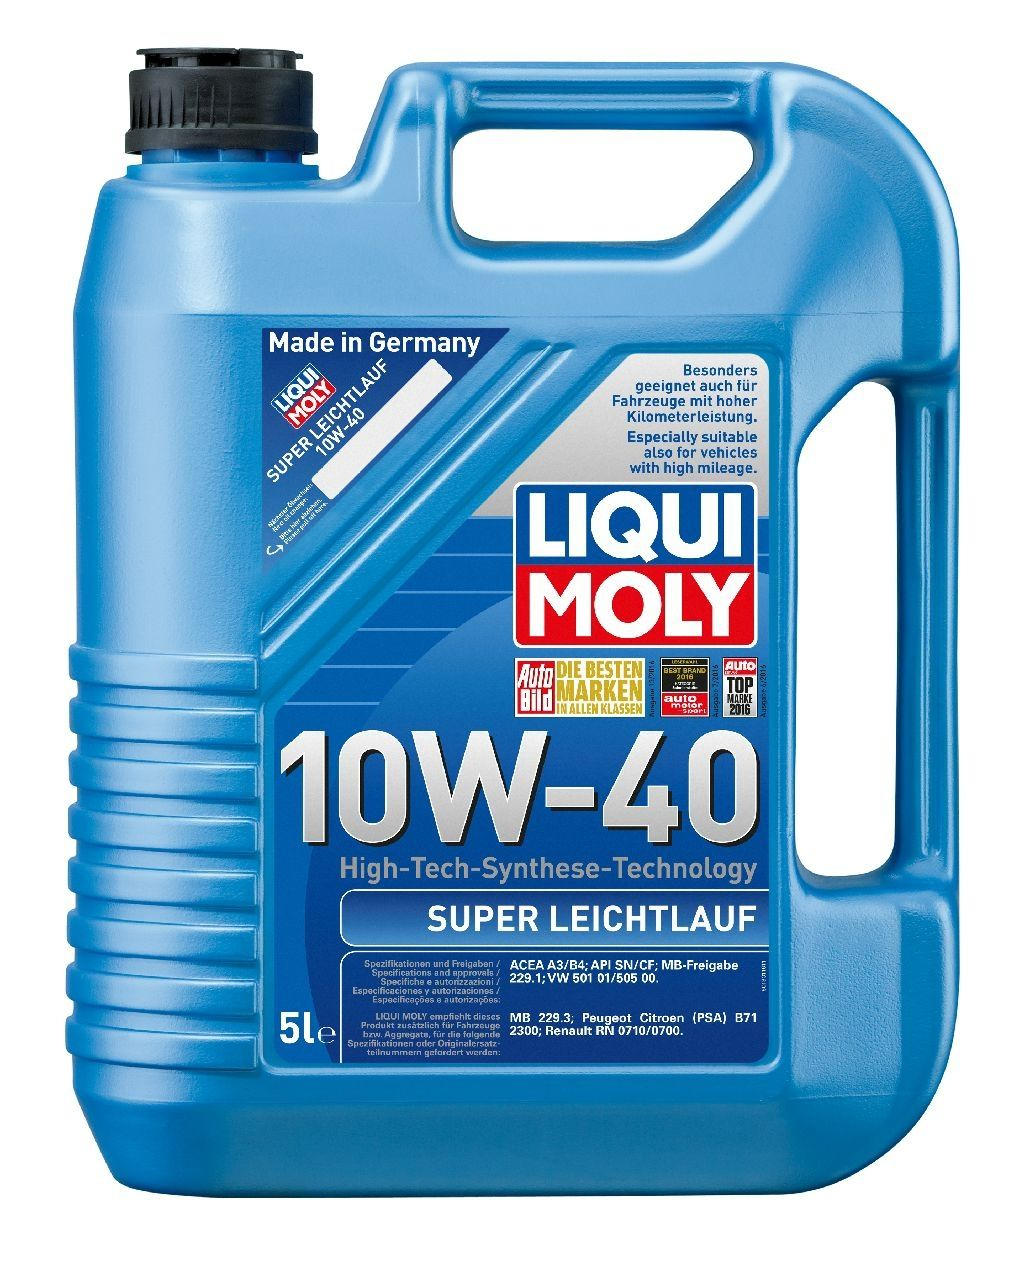 Liqui moly shop buy liqui moly products online jumia for Best motor oil in the world